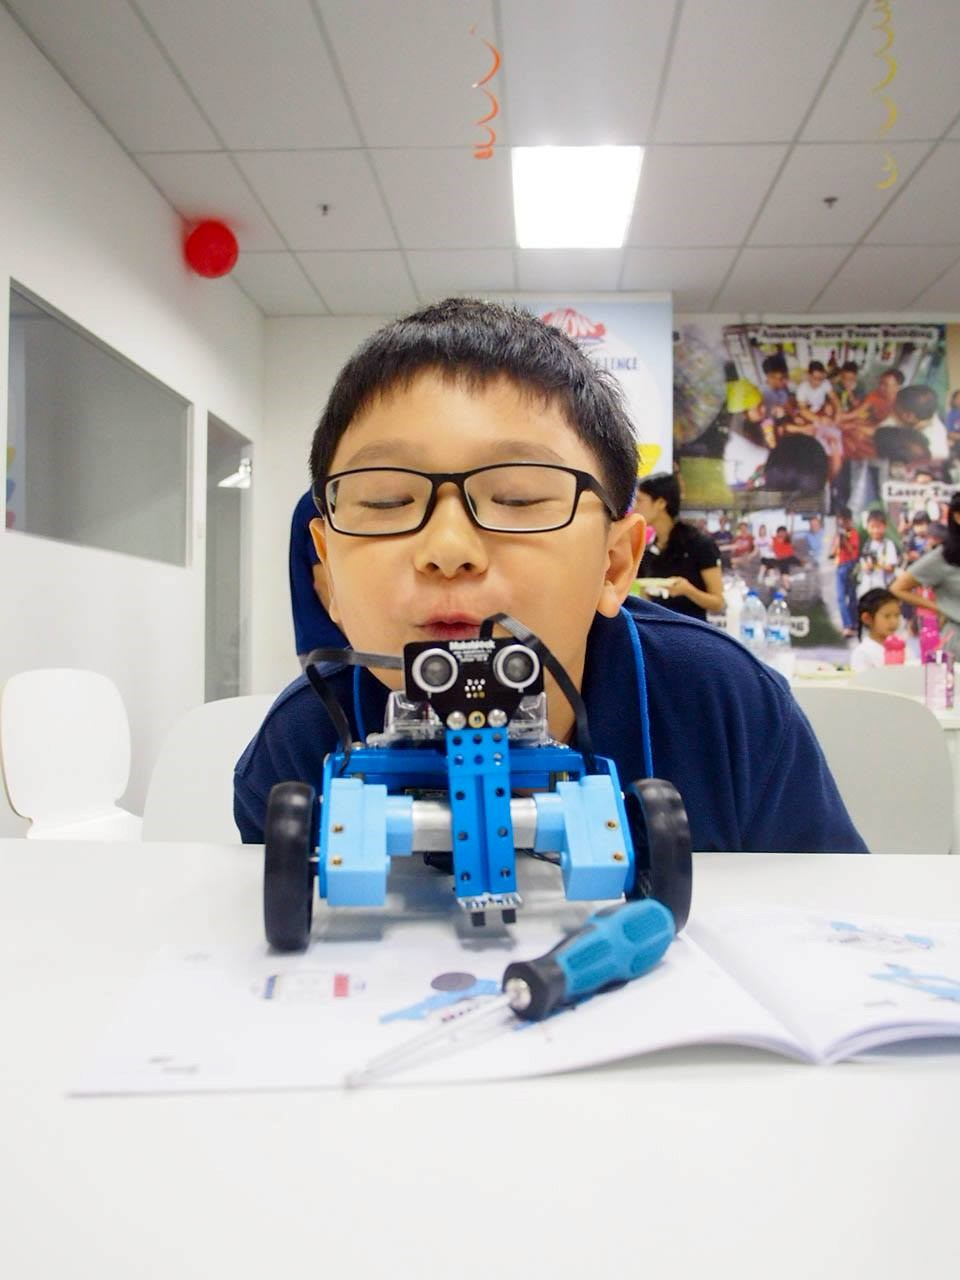 robotics class for kids